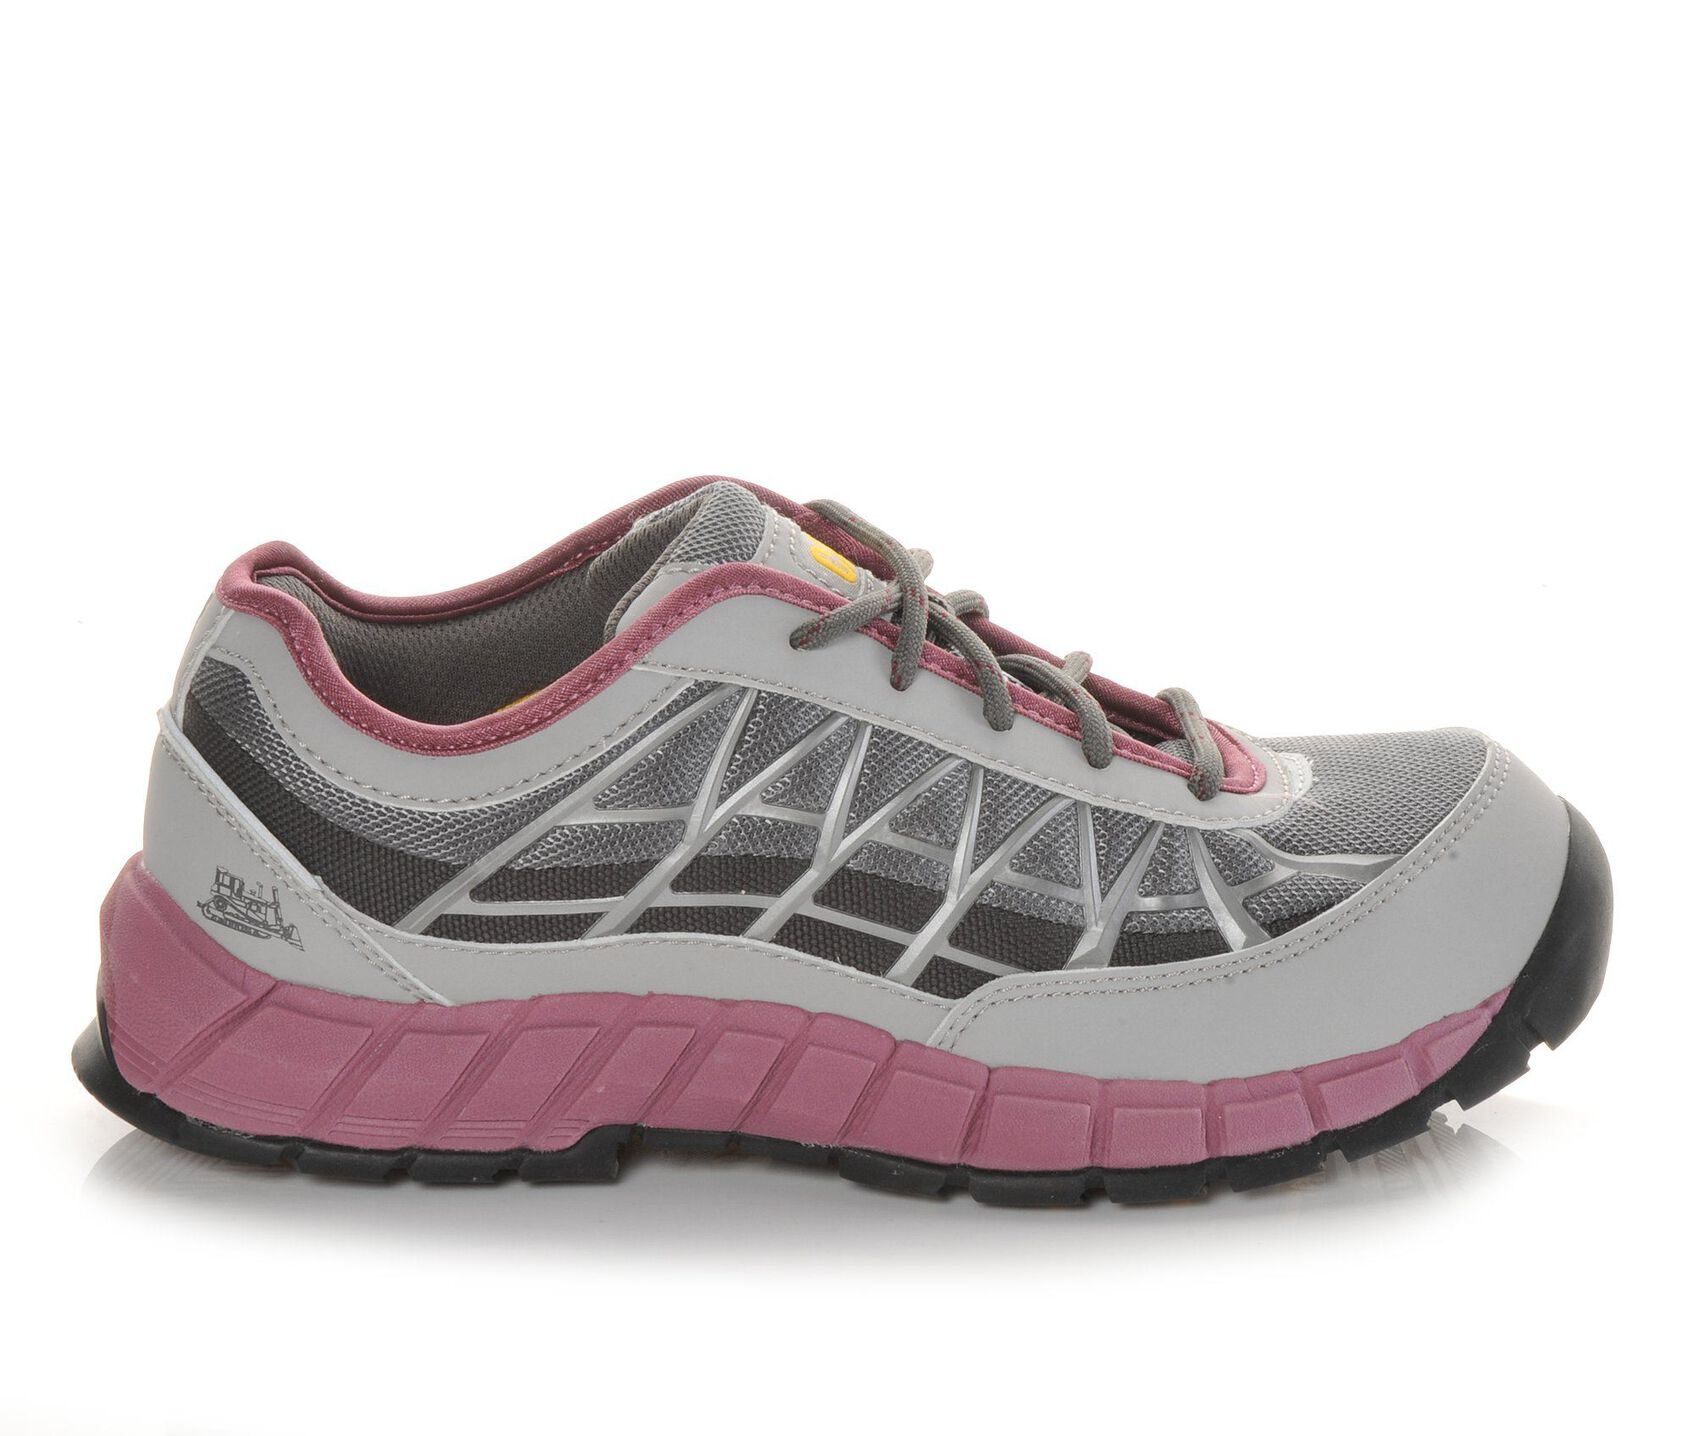 Caterpillar Connexion Work Shoes Steel Safety Toe For Women